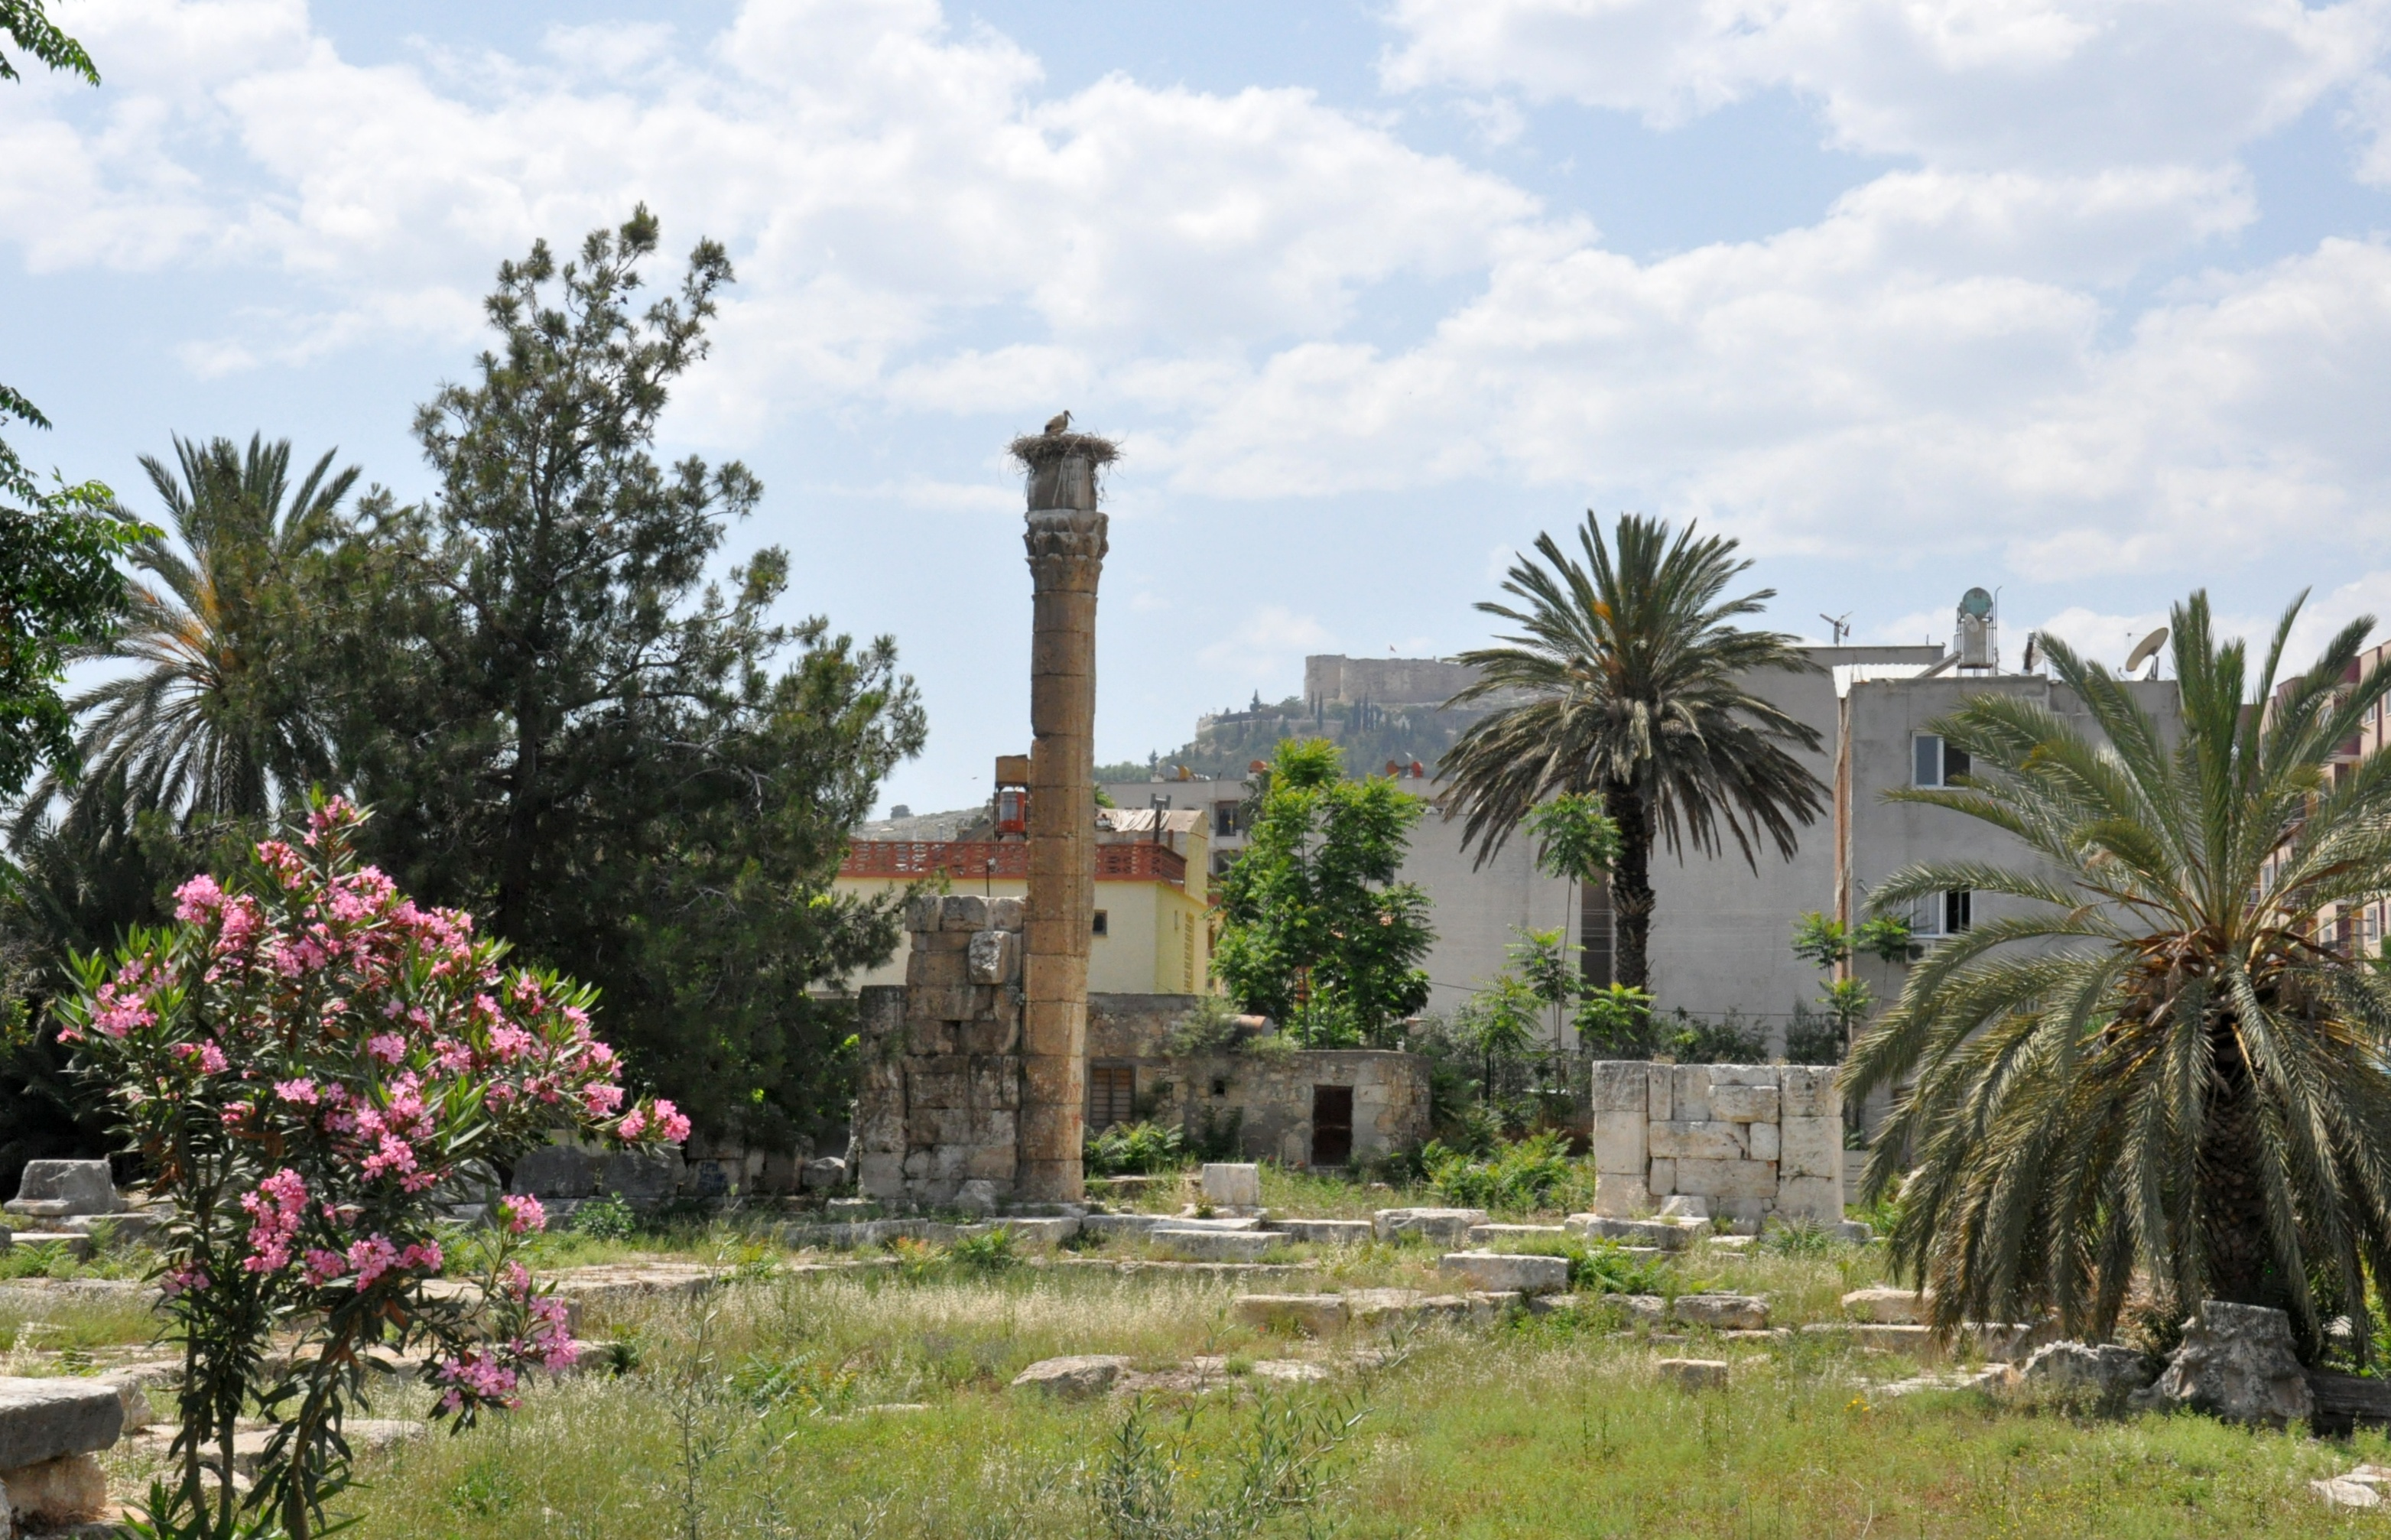 Zeus Temple in Silifke